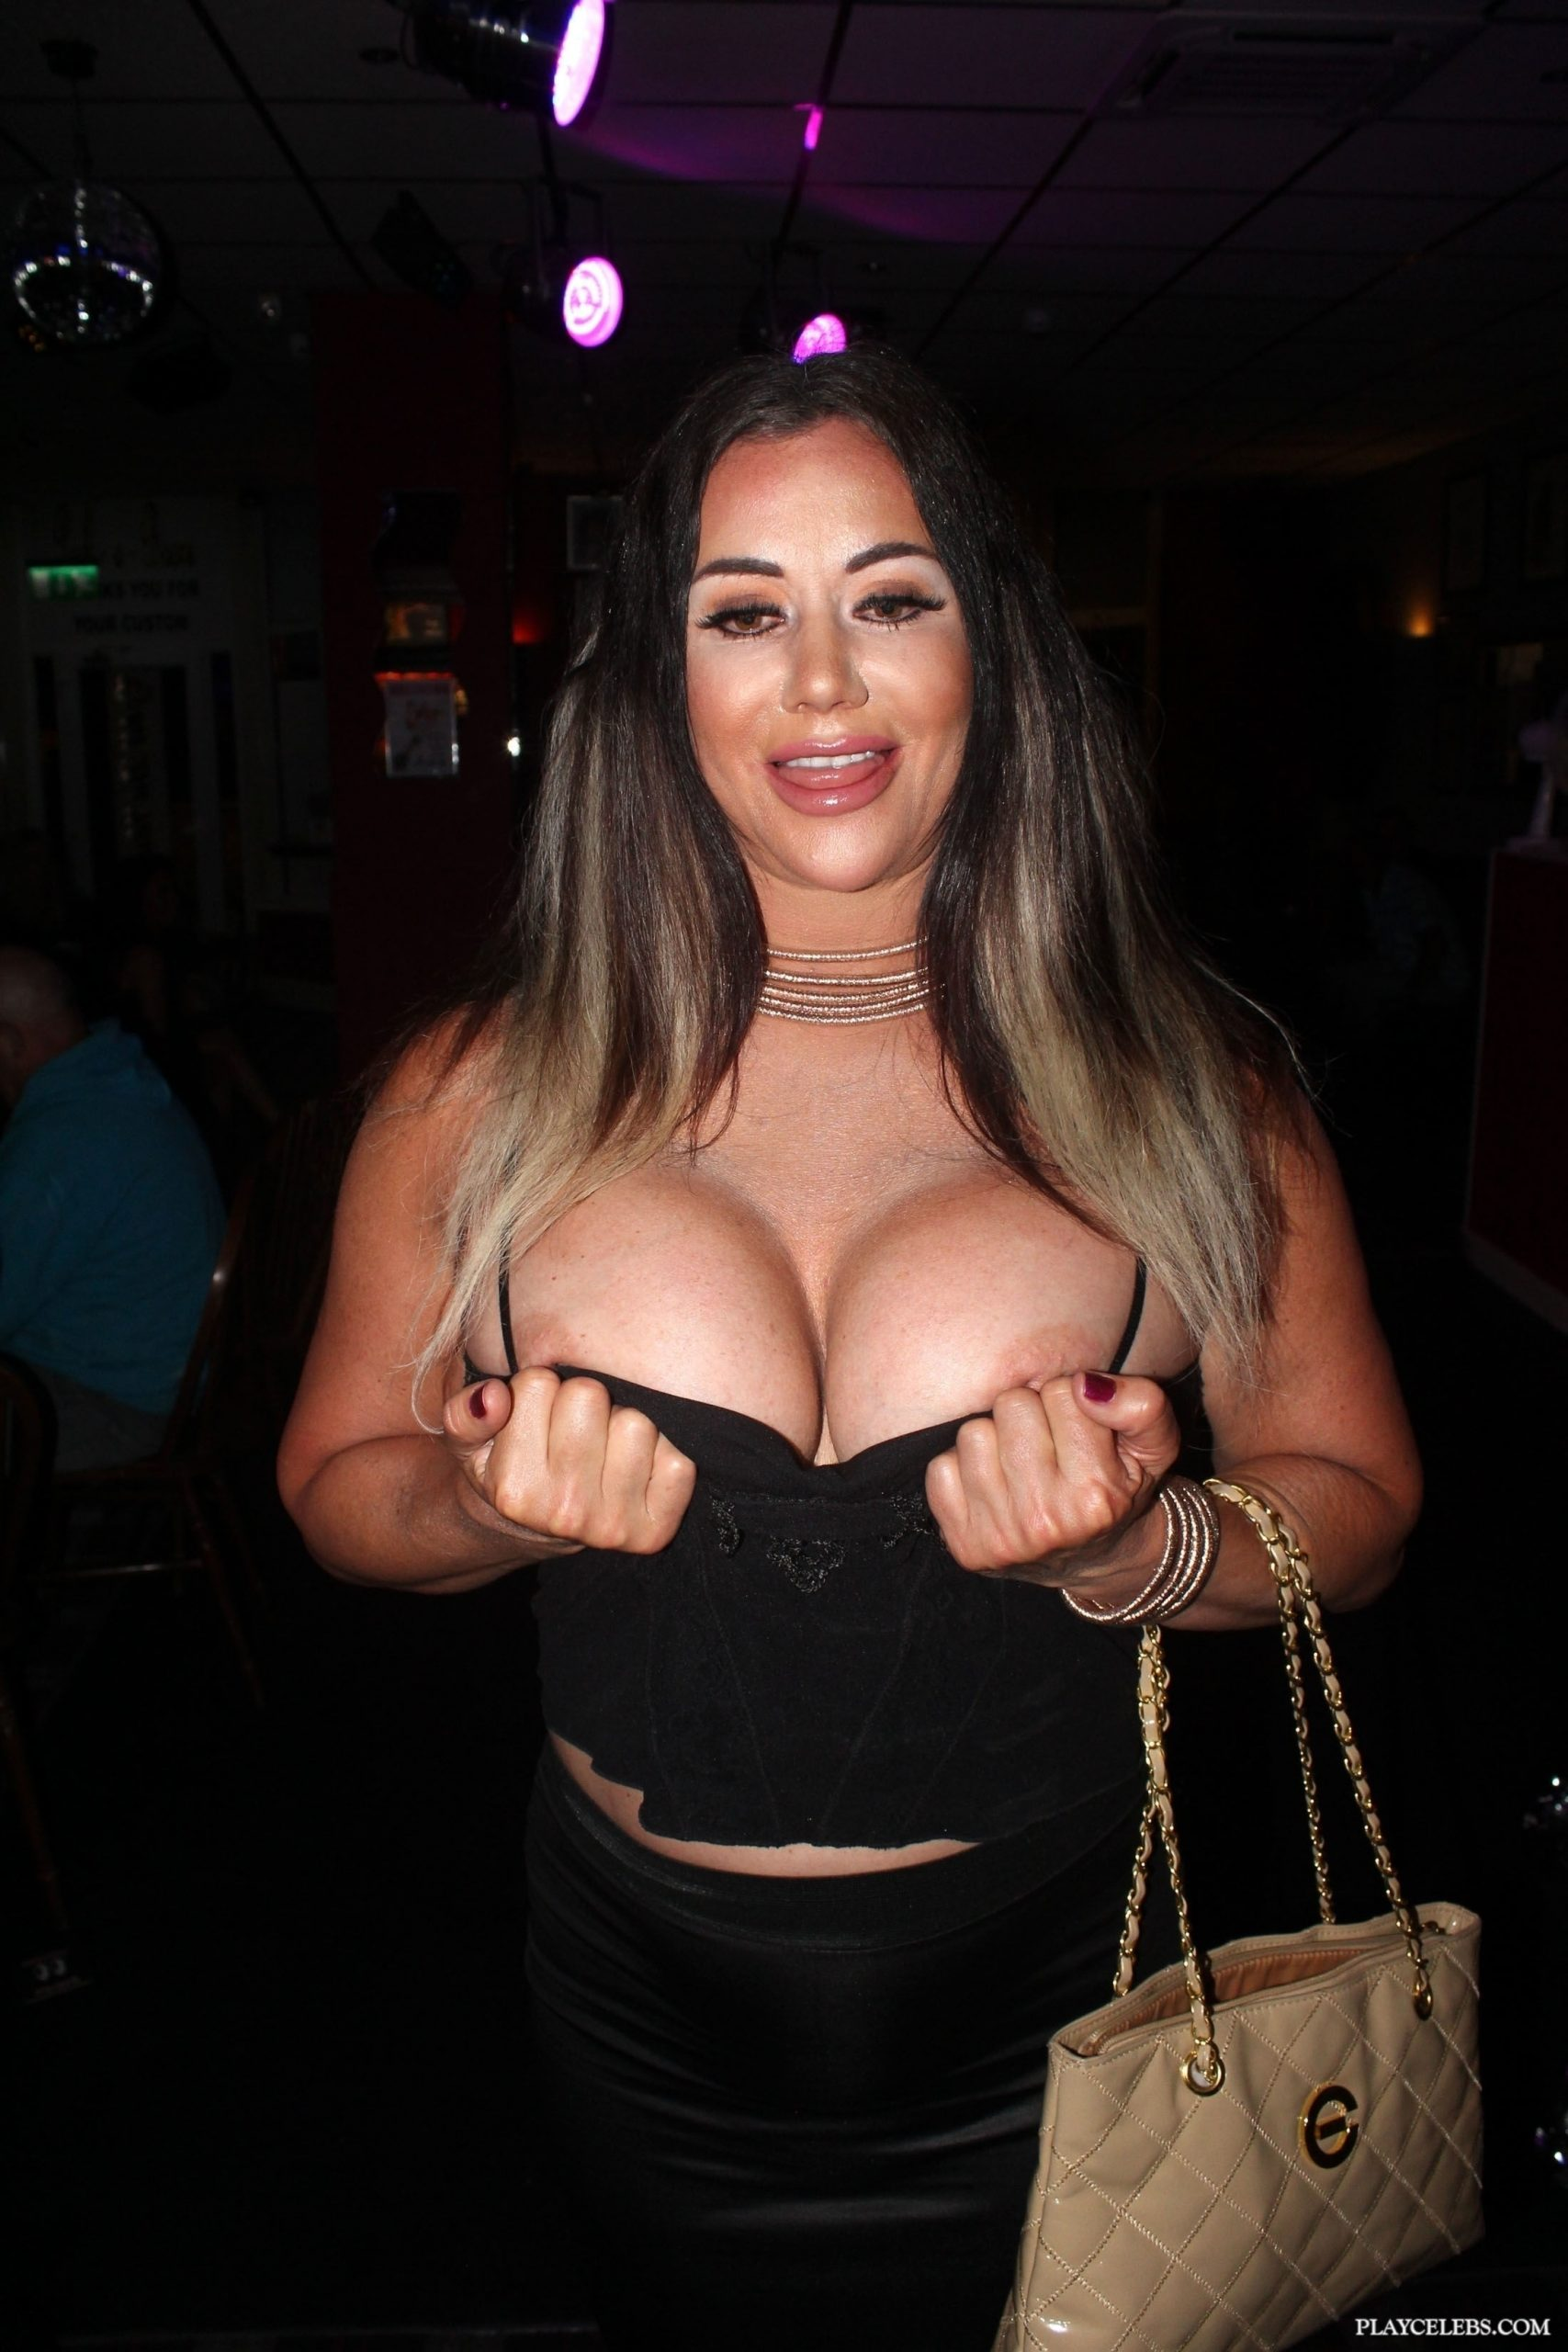 Lisa Appleton Topless In A Night Club